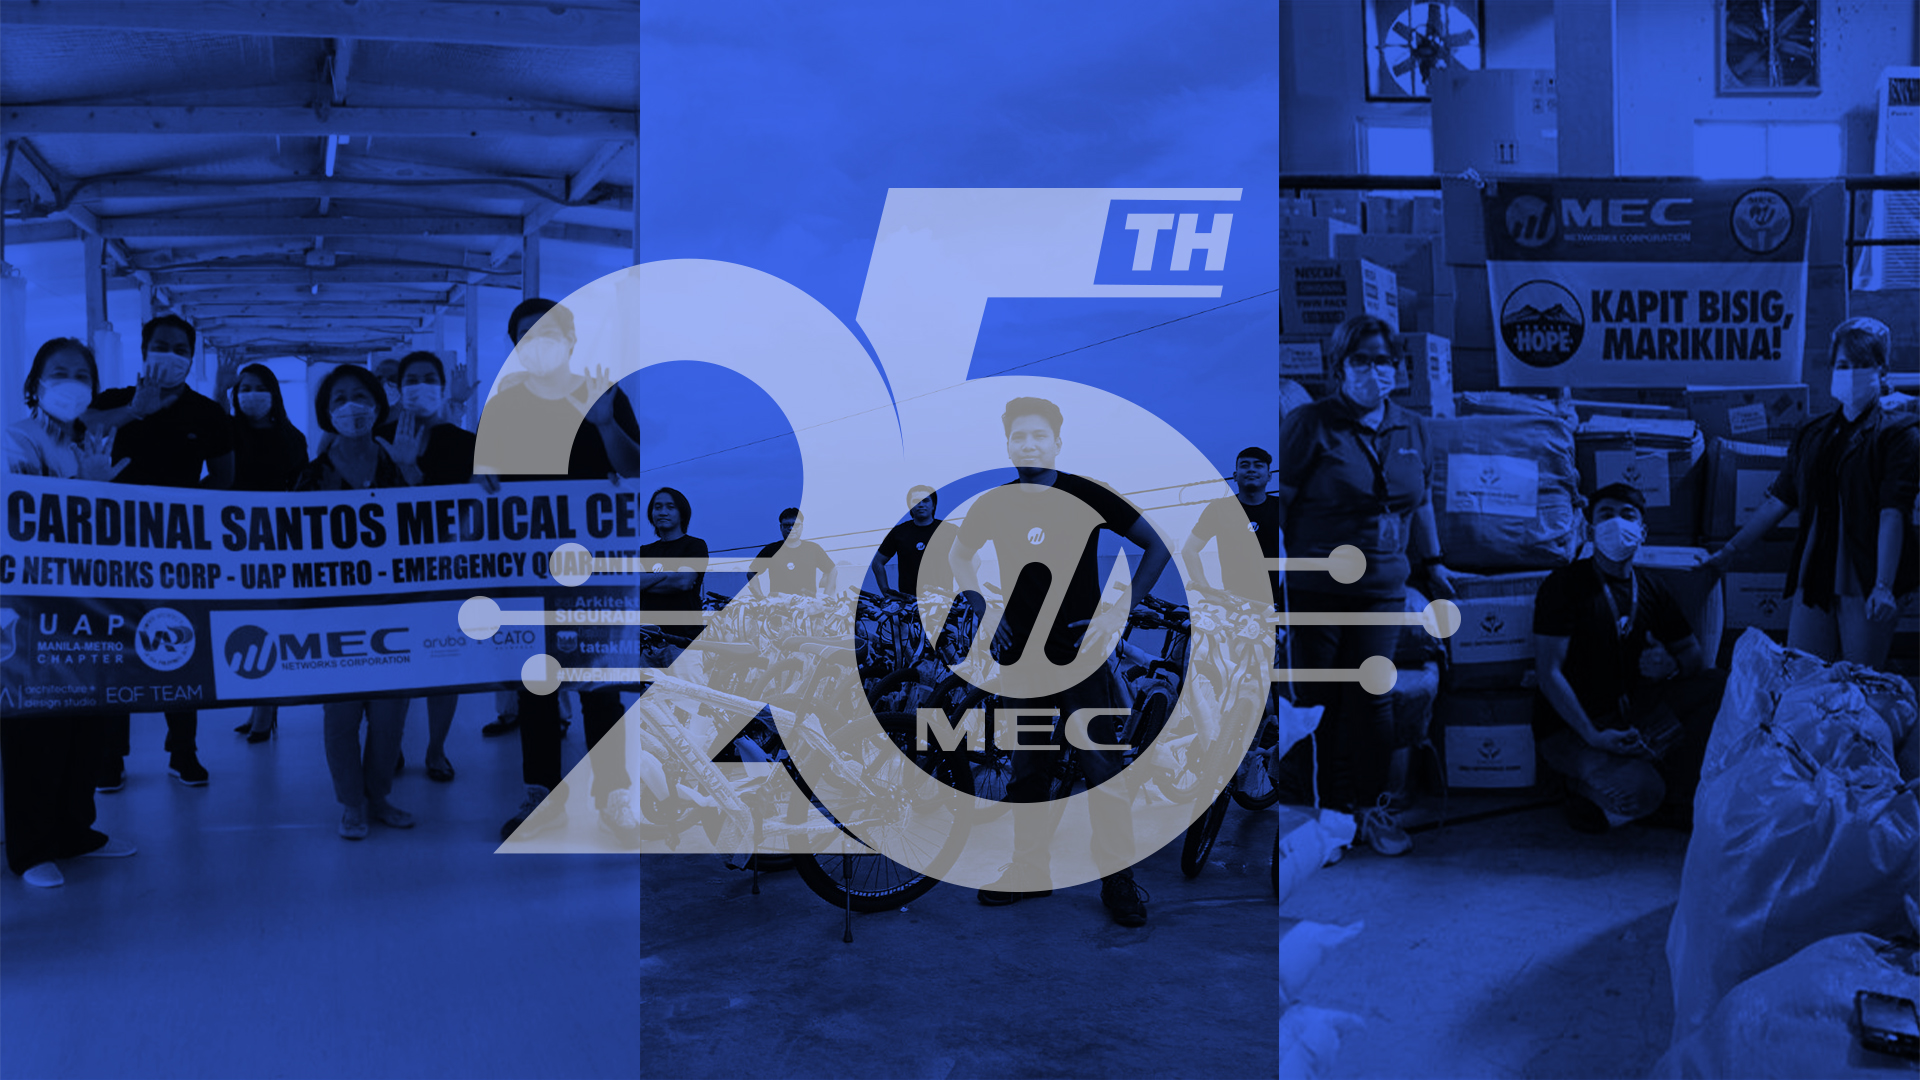 25 Years of Empowering People Through Technology and More